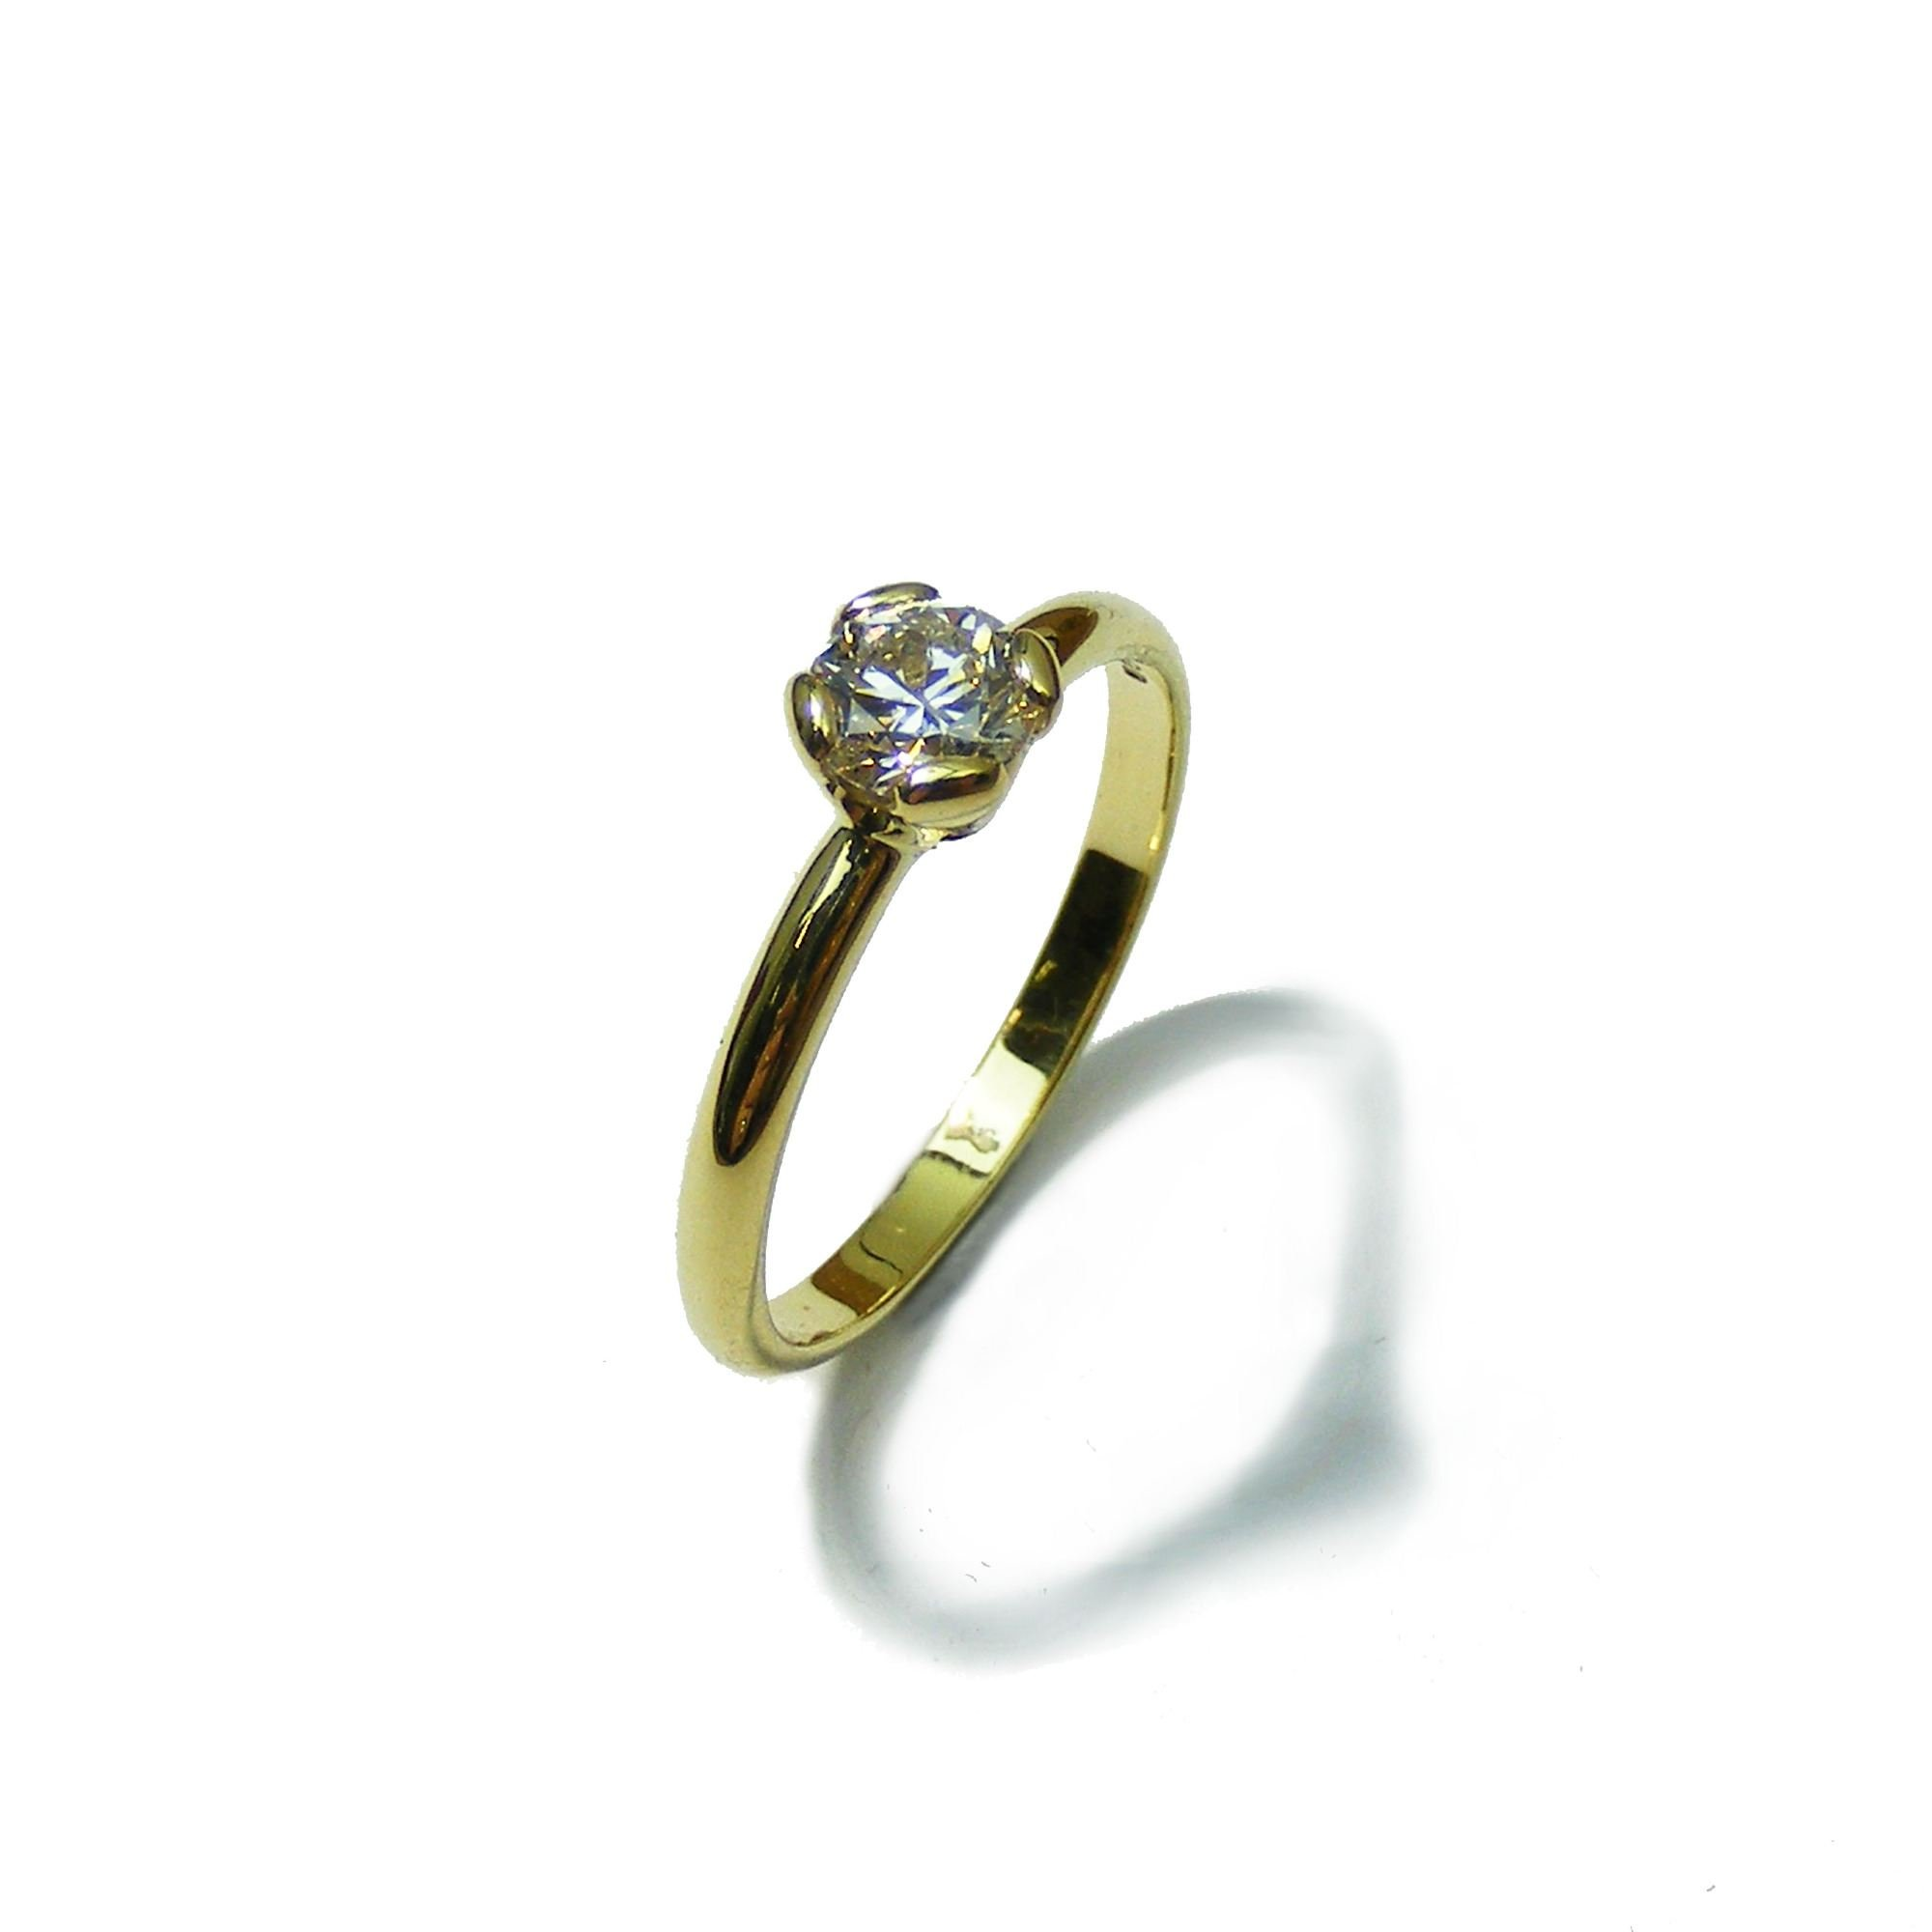 new bring bario the up roundup our heirloom custom romance blog and ombre bespoke neal romantics gems sourced ombr rings diamonds cust latest engagement to round news of ethically cluster